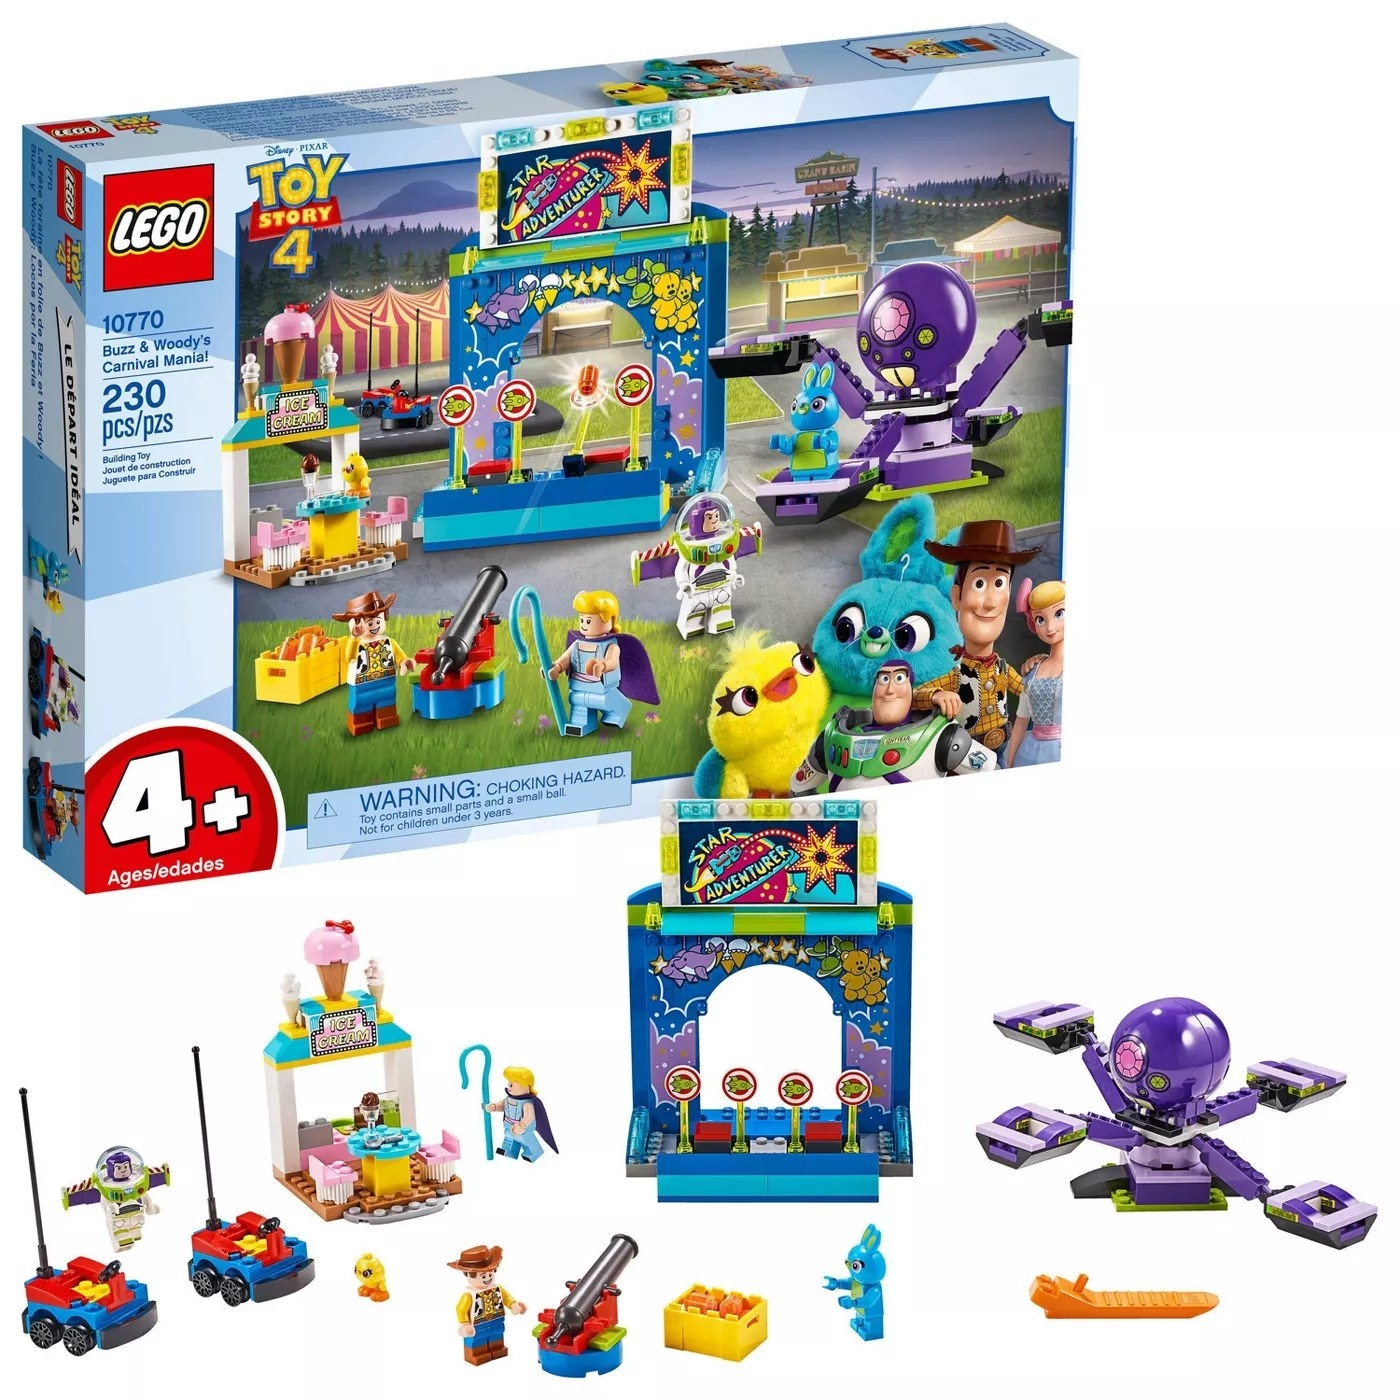 The 230-piece Toy Story 4 LEGO set for ages four and up